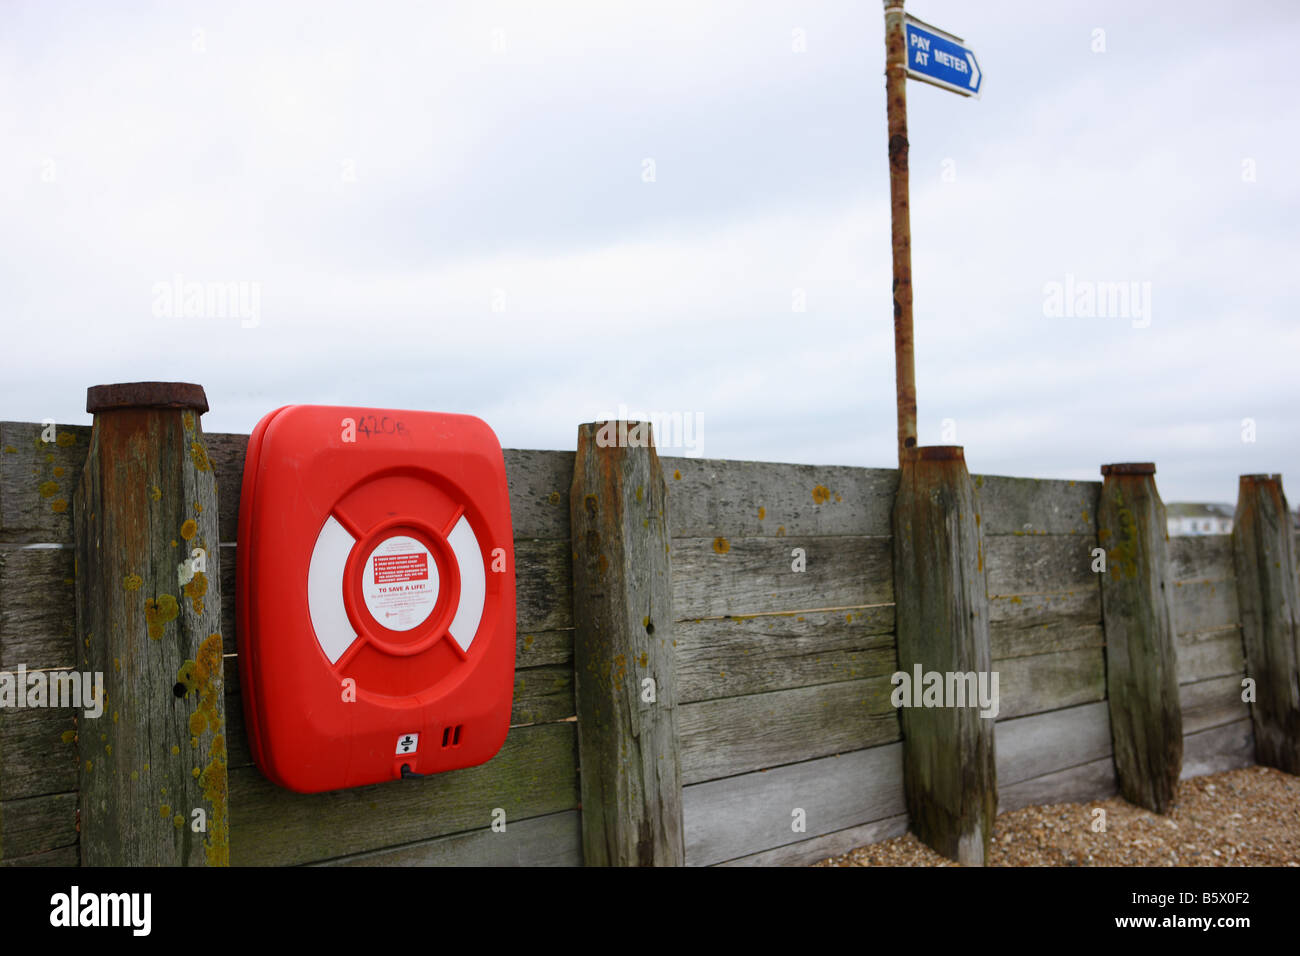 Lifebelt on the beach at Hayling Island in Hampshire, England - Stock Image